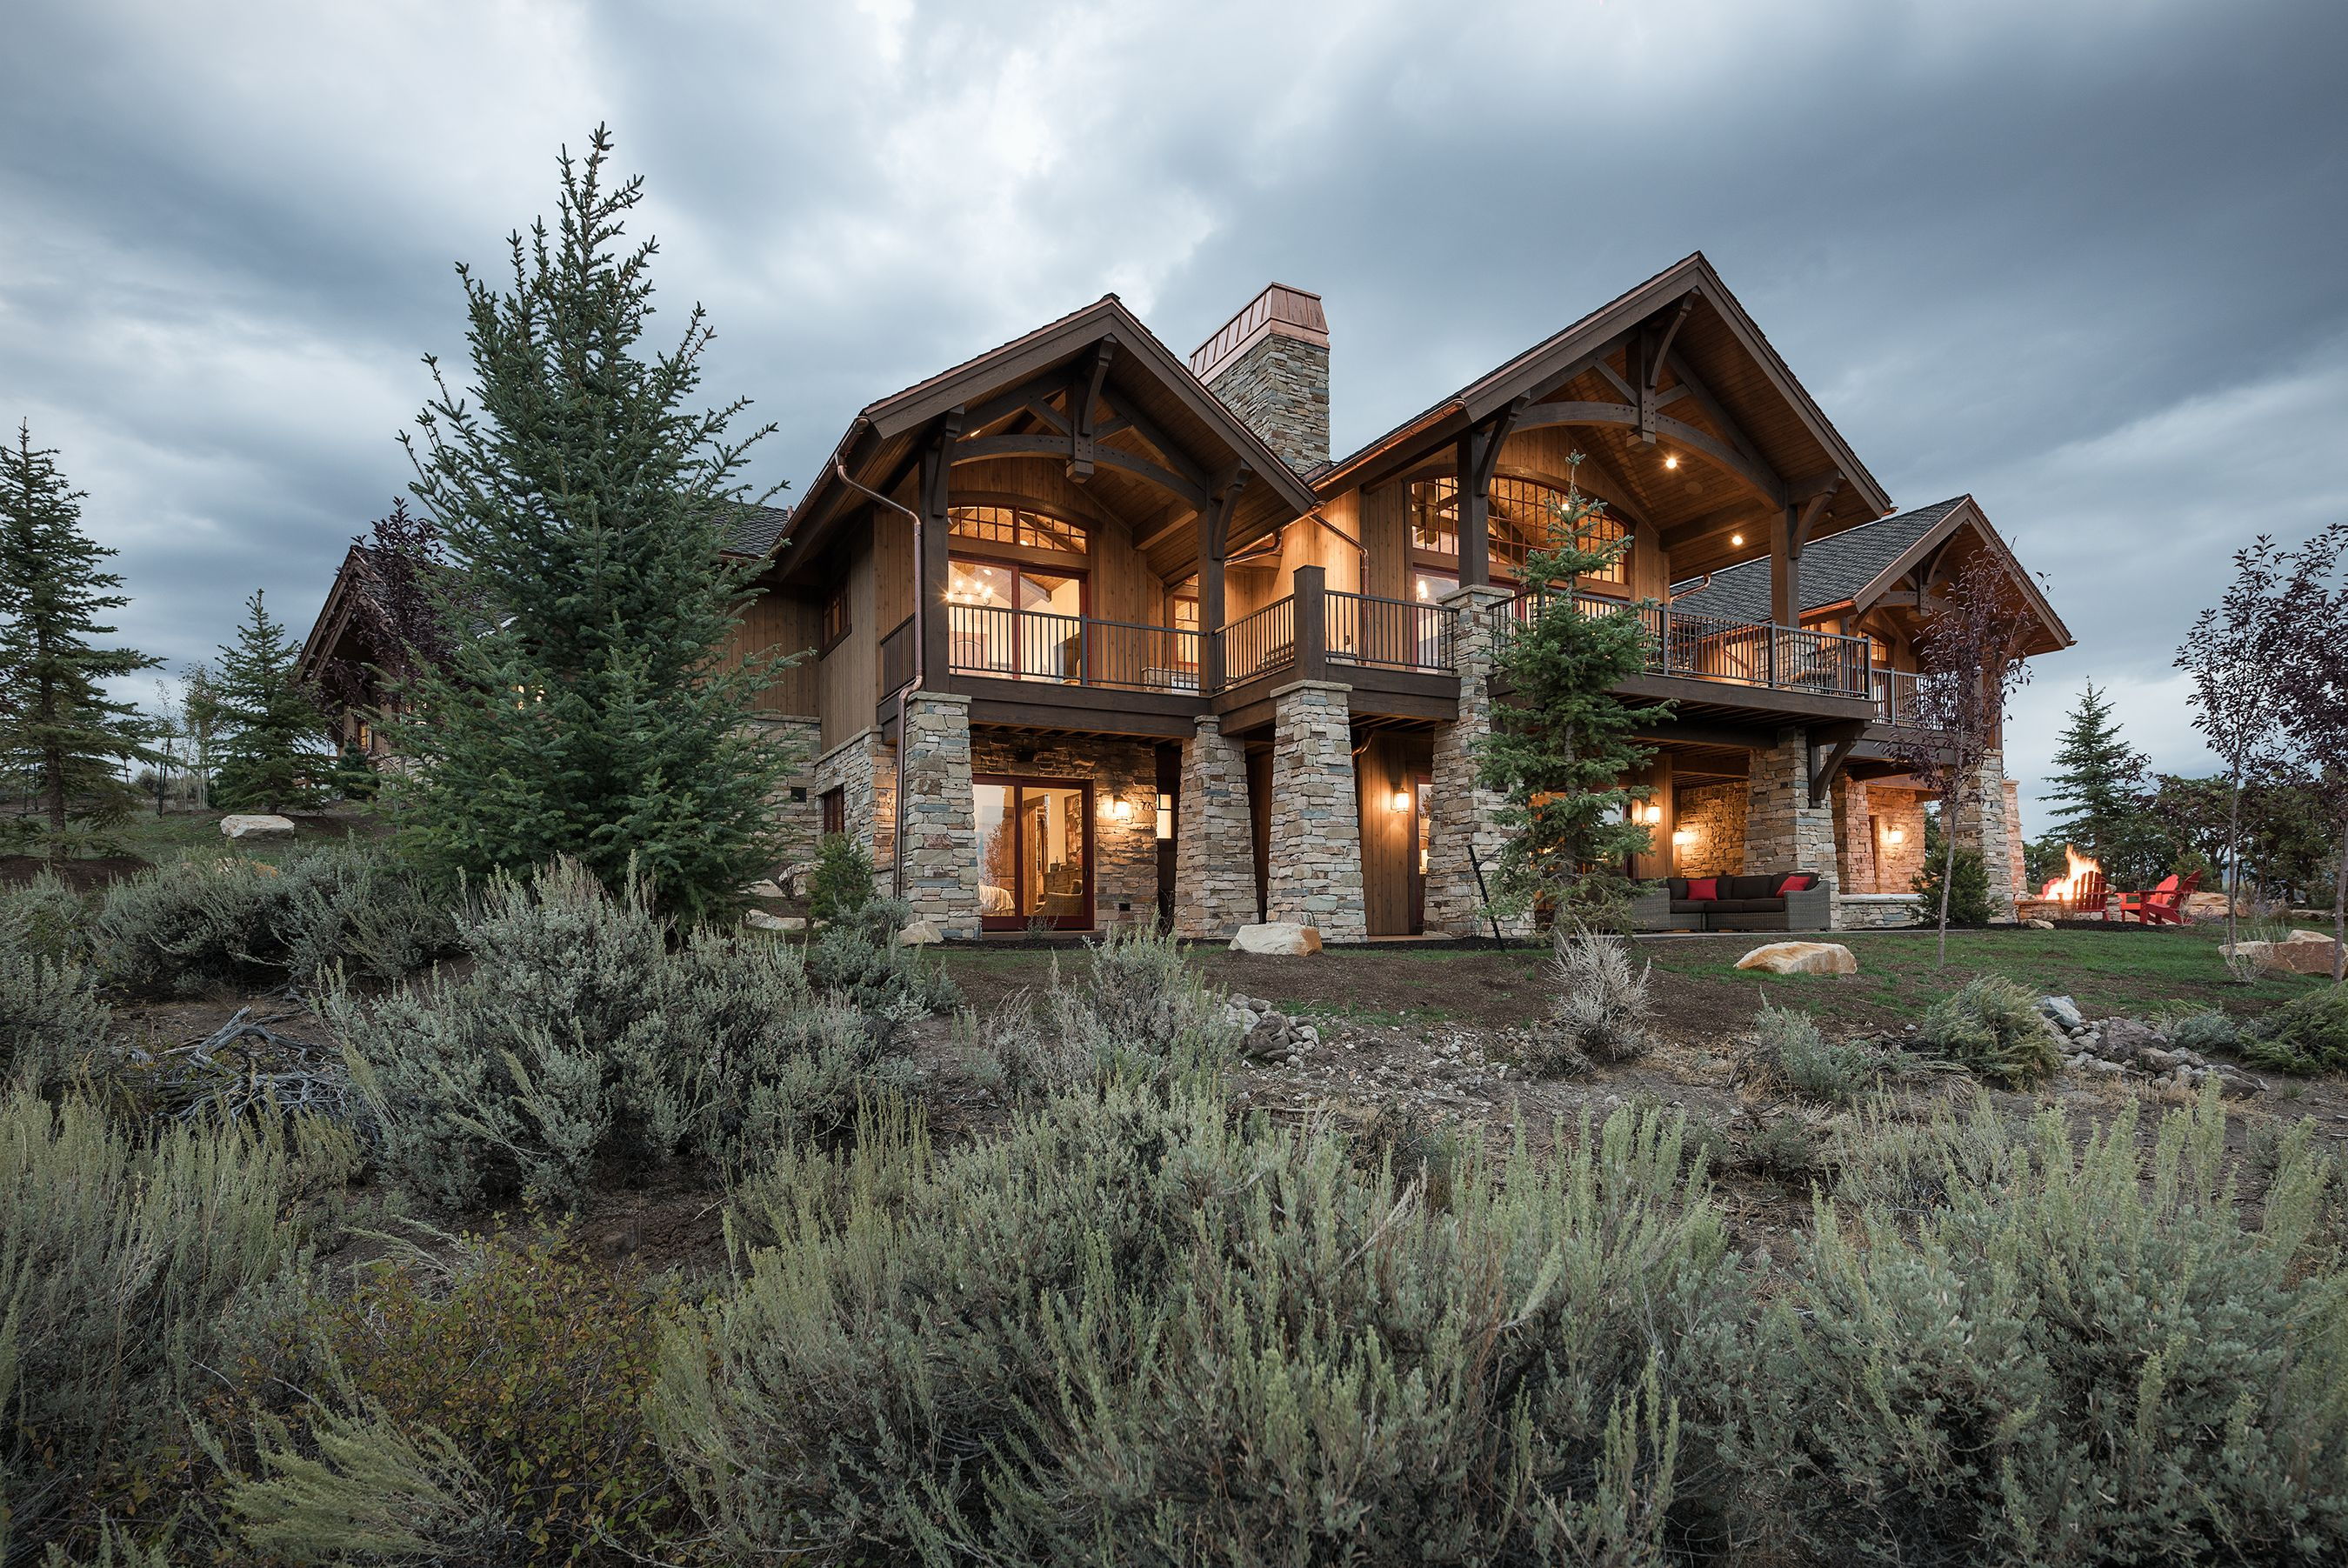 Landscaping For The 2016 Park City Showcase Of Homes In Promontory Home Built By Cameo Inc Timberridge Utah